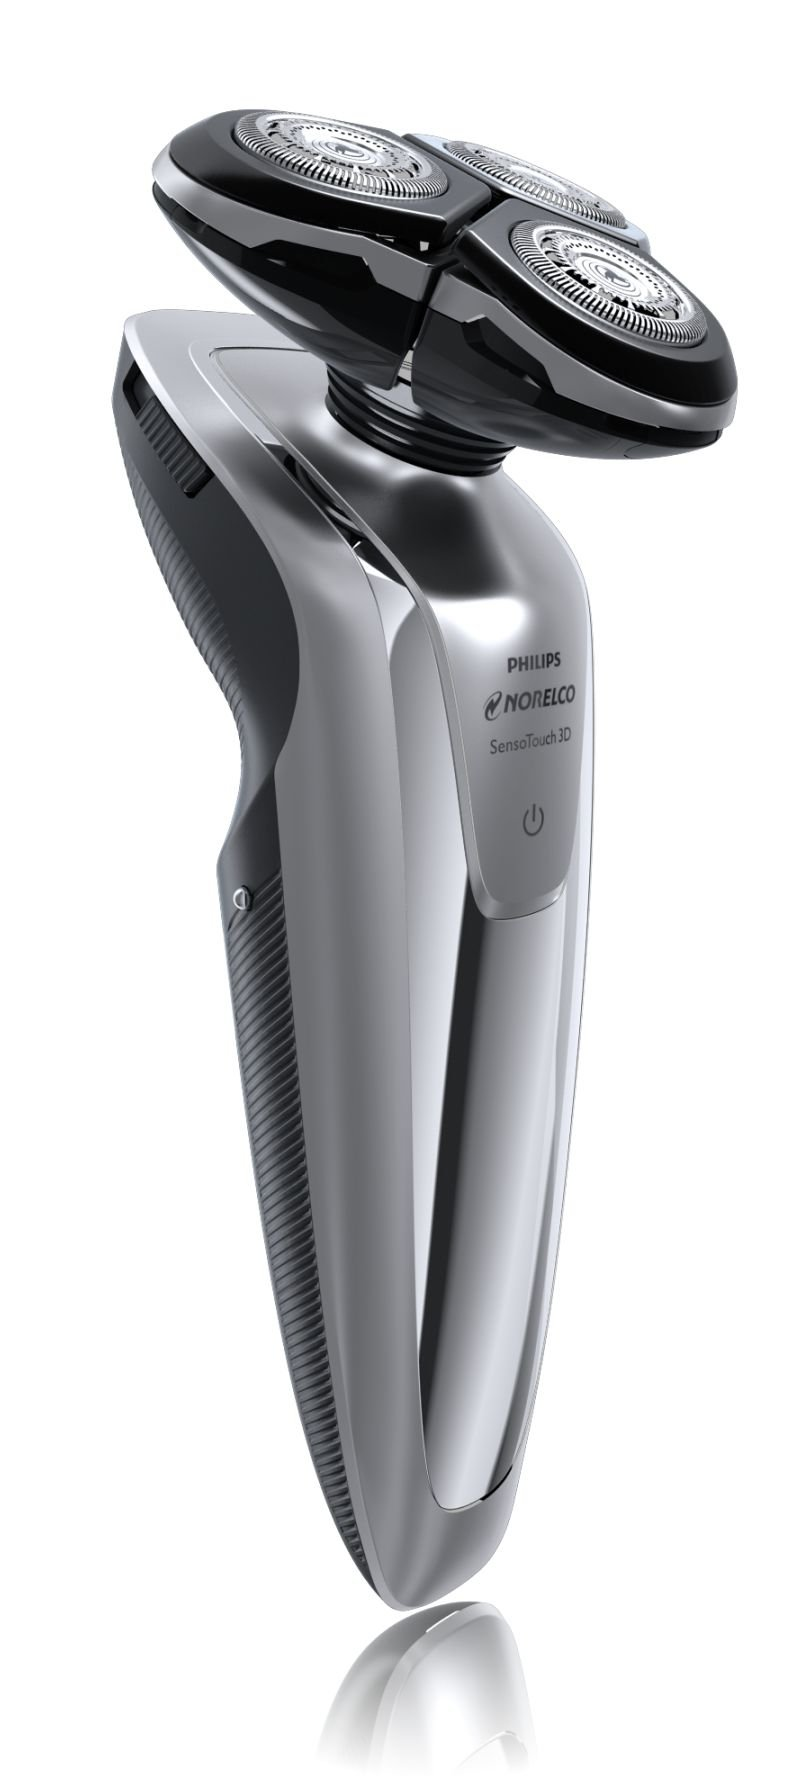 Philips Norelco The Ultimate Shaving Experience (Shaver 8500) Series 8000. Model 1260X